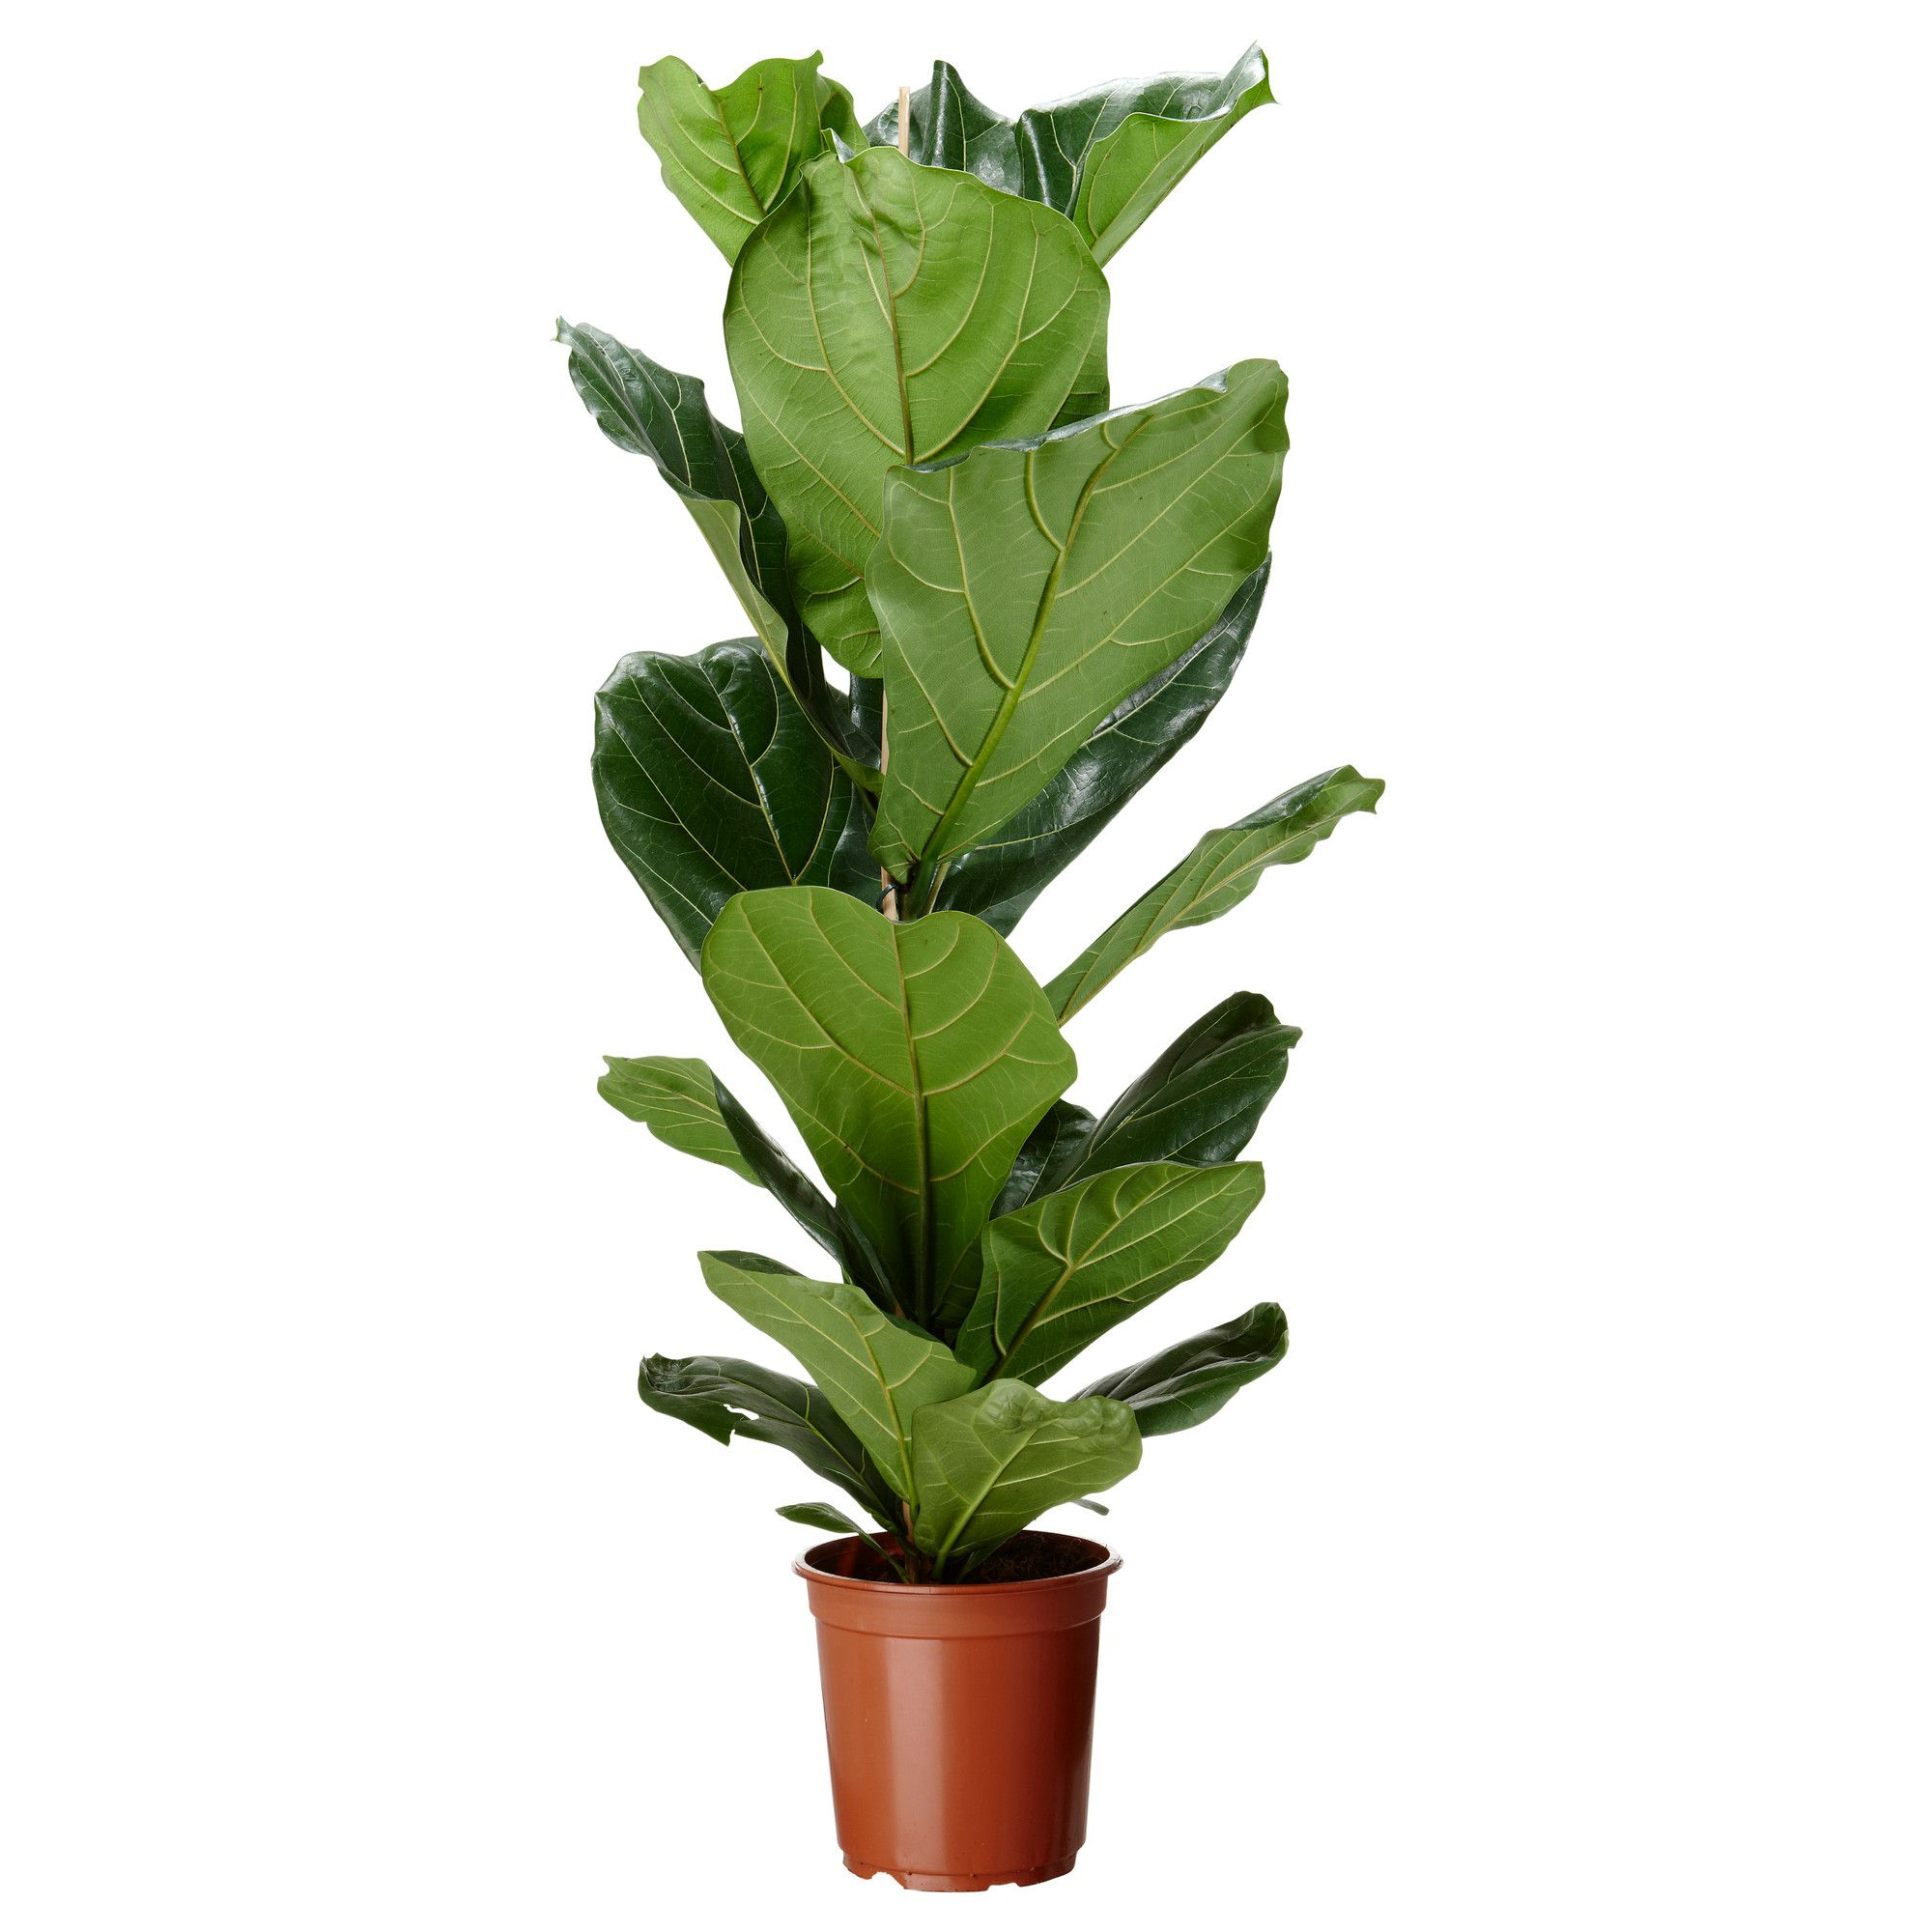 Ikea Planters Large Ficus Lyrata Potted Plant Ikea 13 Fiddle Leaf Fig